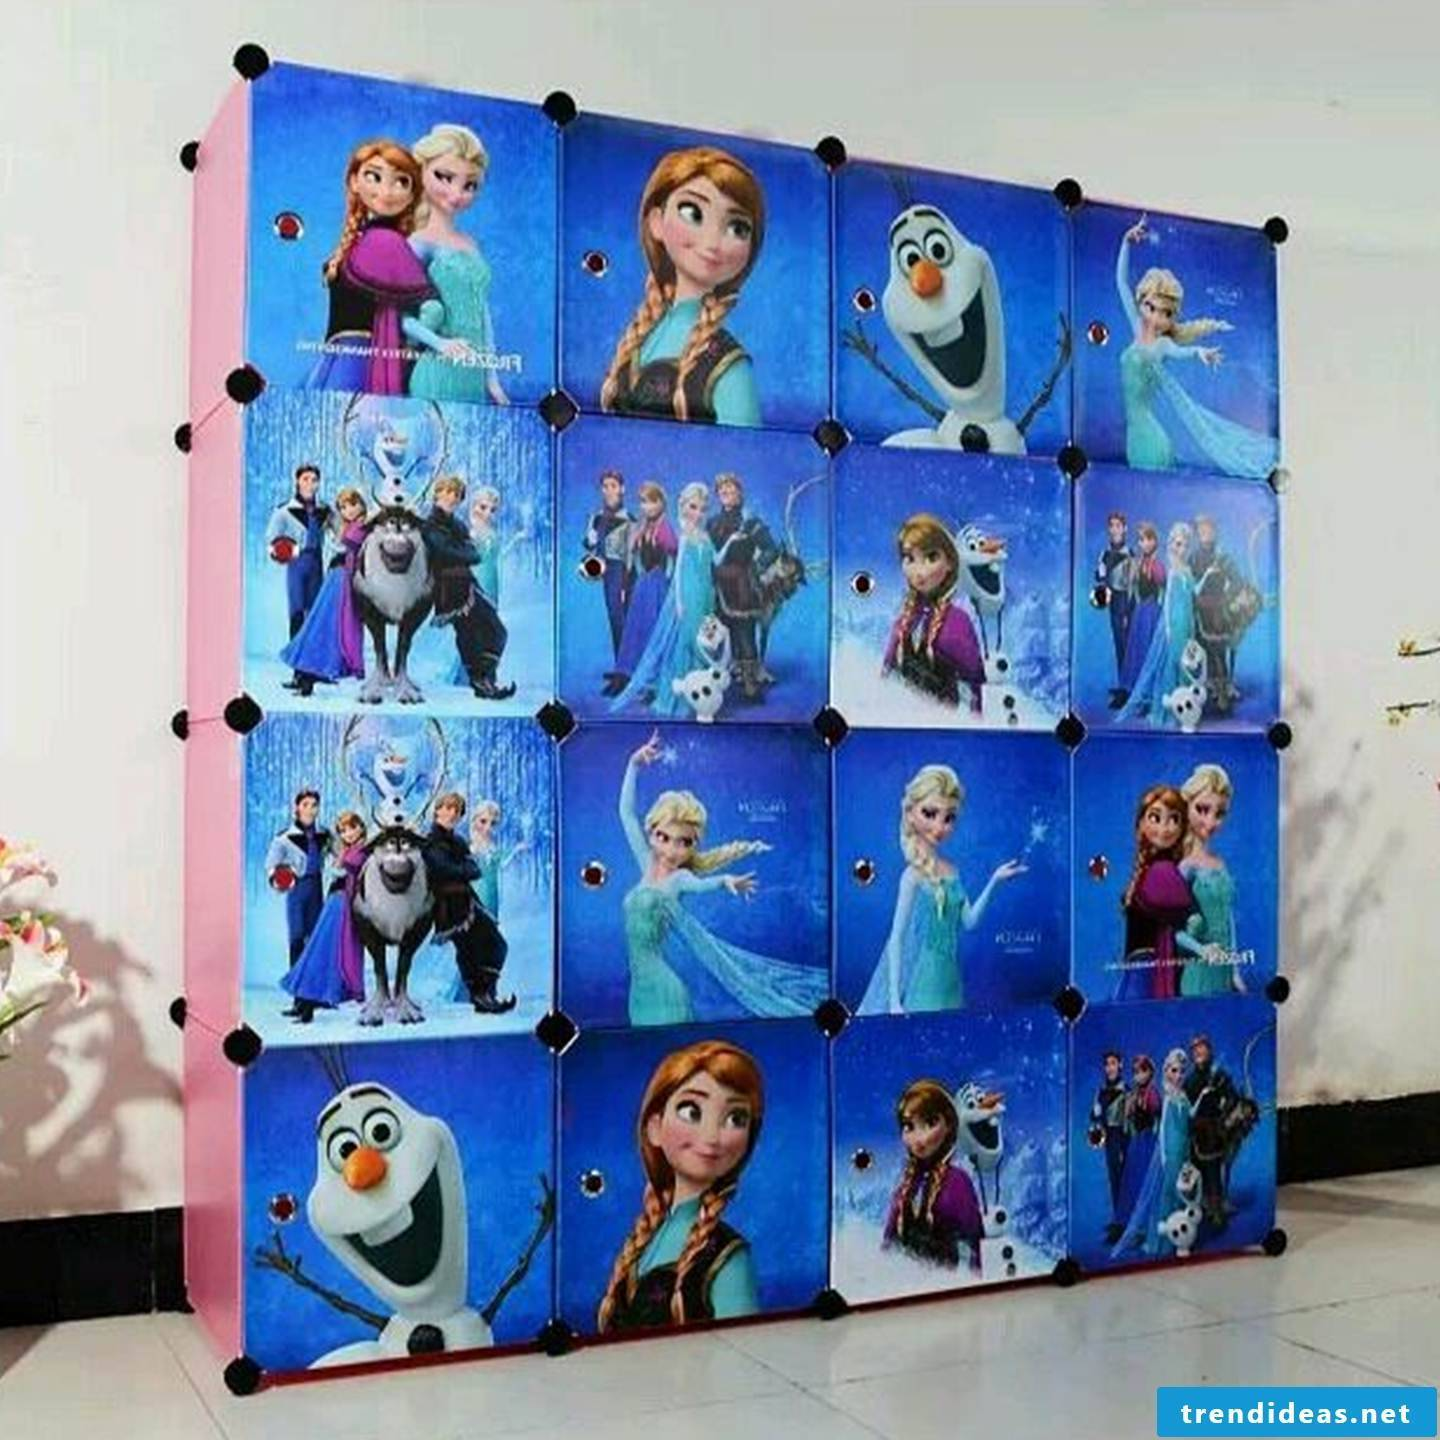 Frozen wardrobe for children